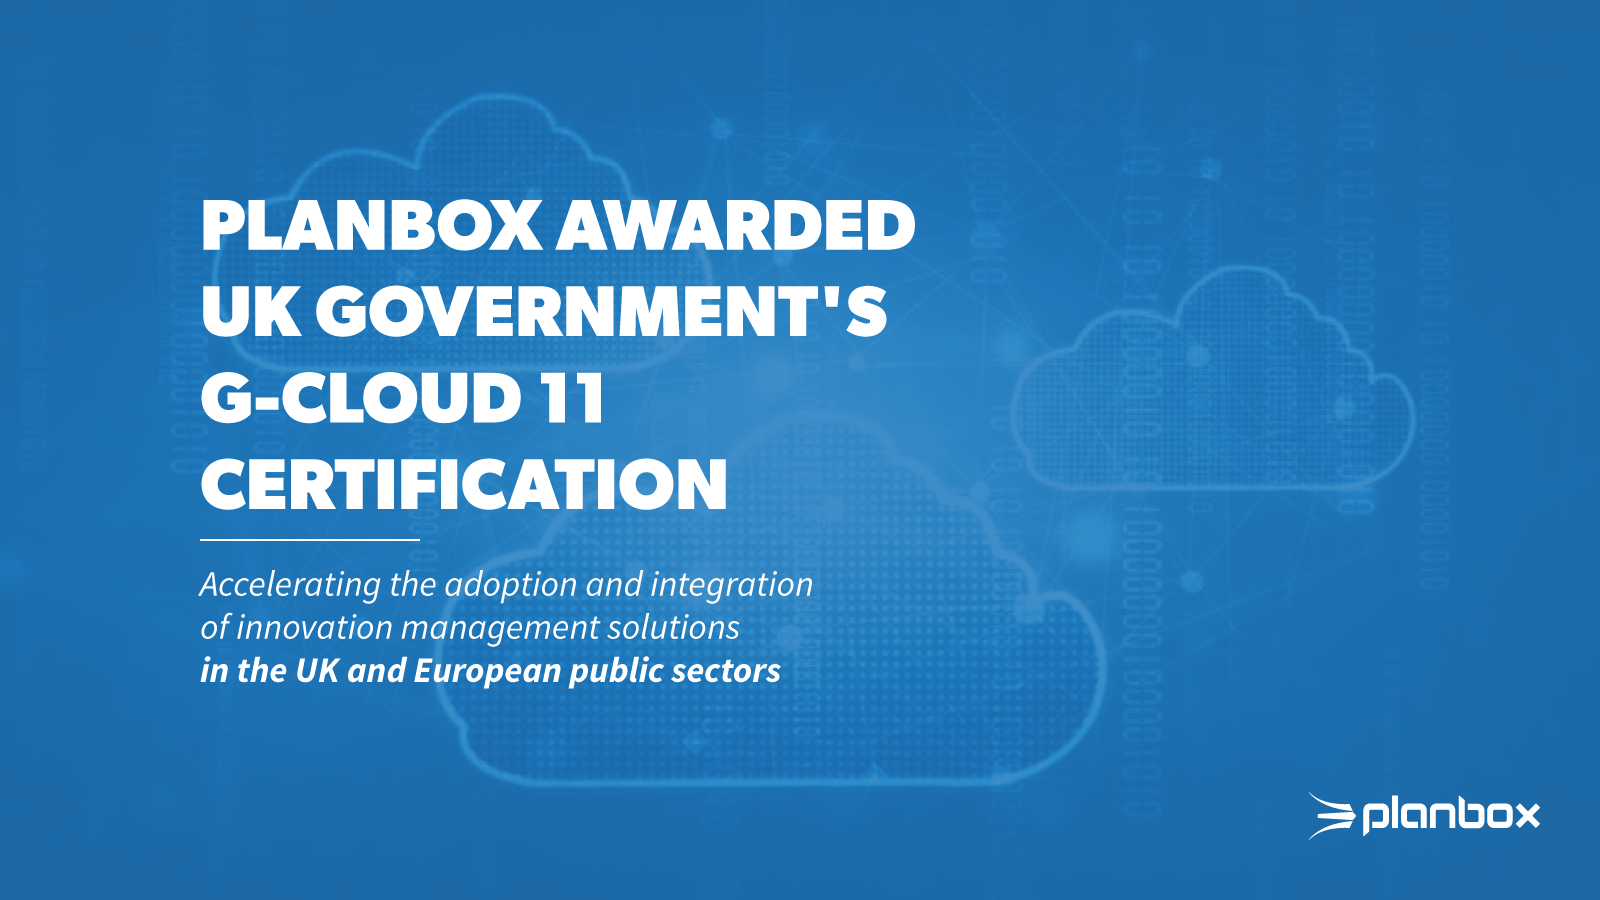 Planbox Awarded UK Government's G-Cloud 11 Certification